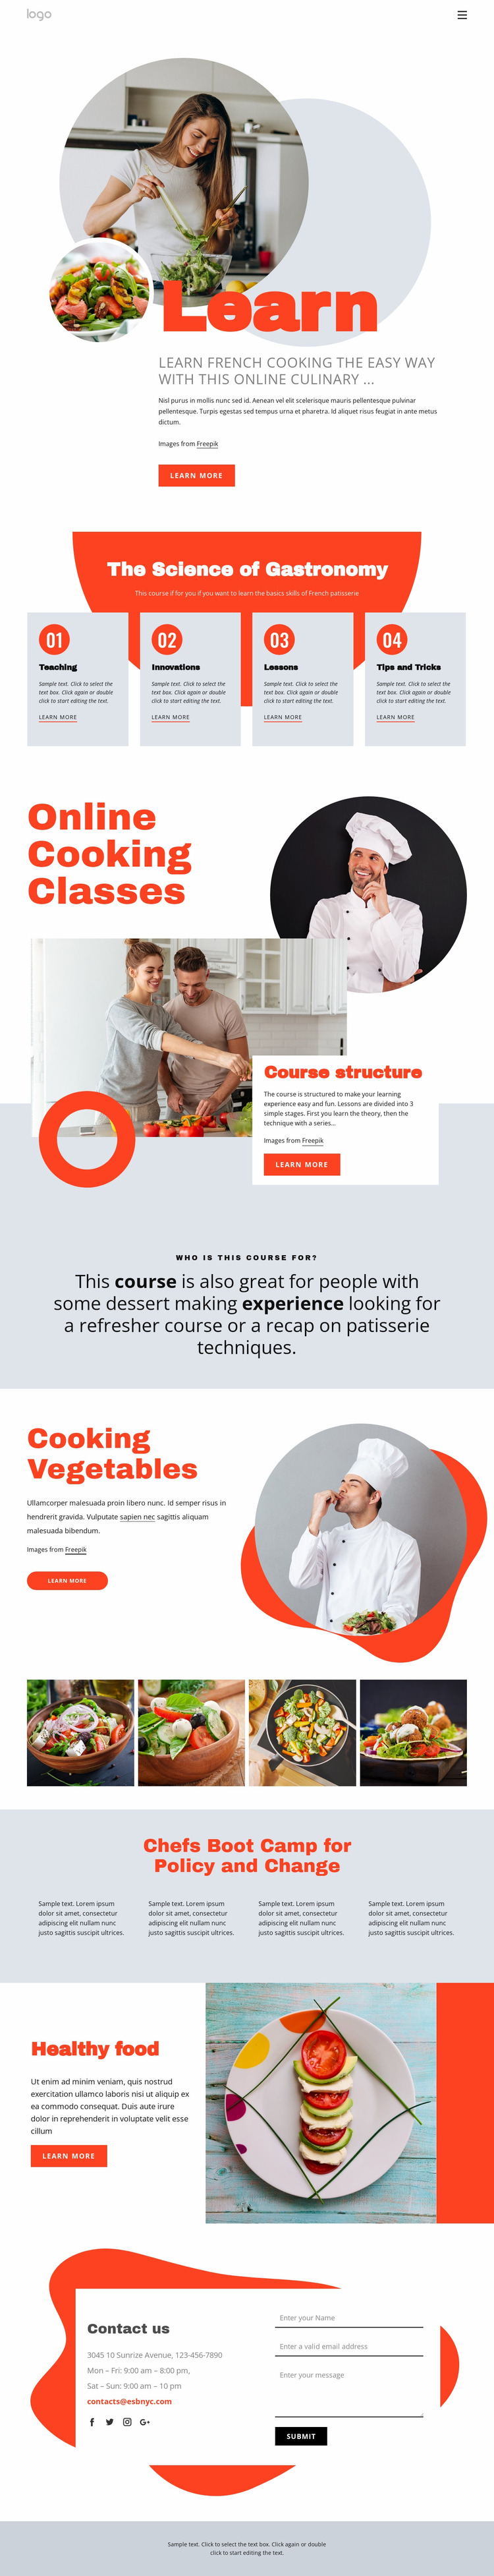 Learn cooking the easy way Website Mockup